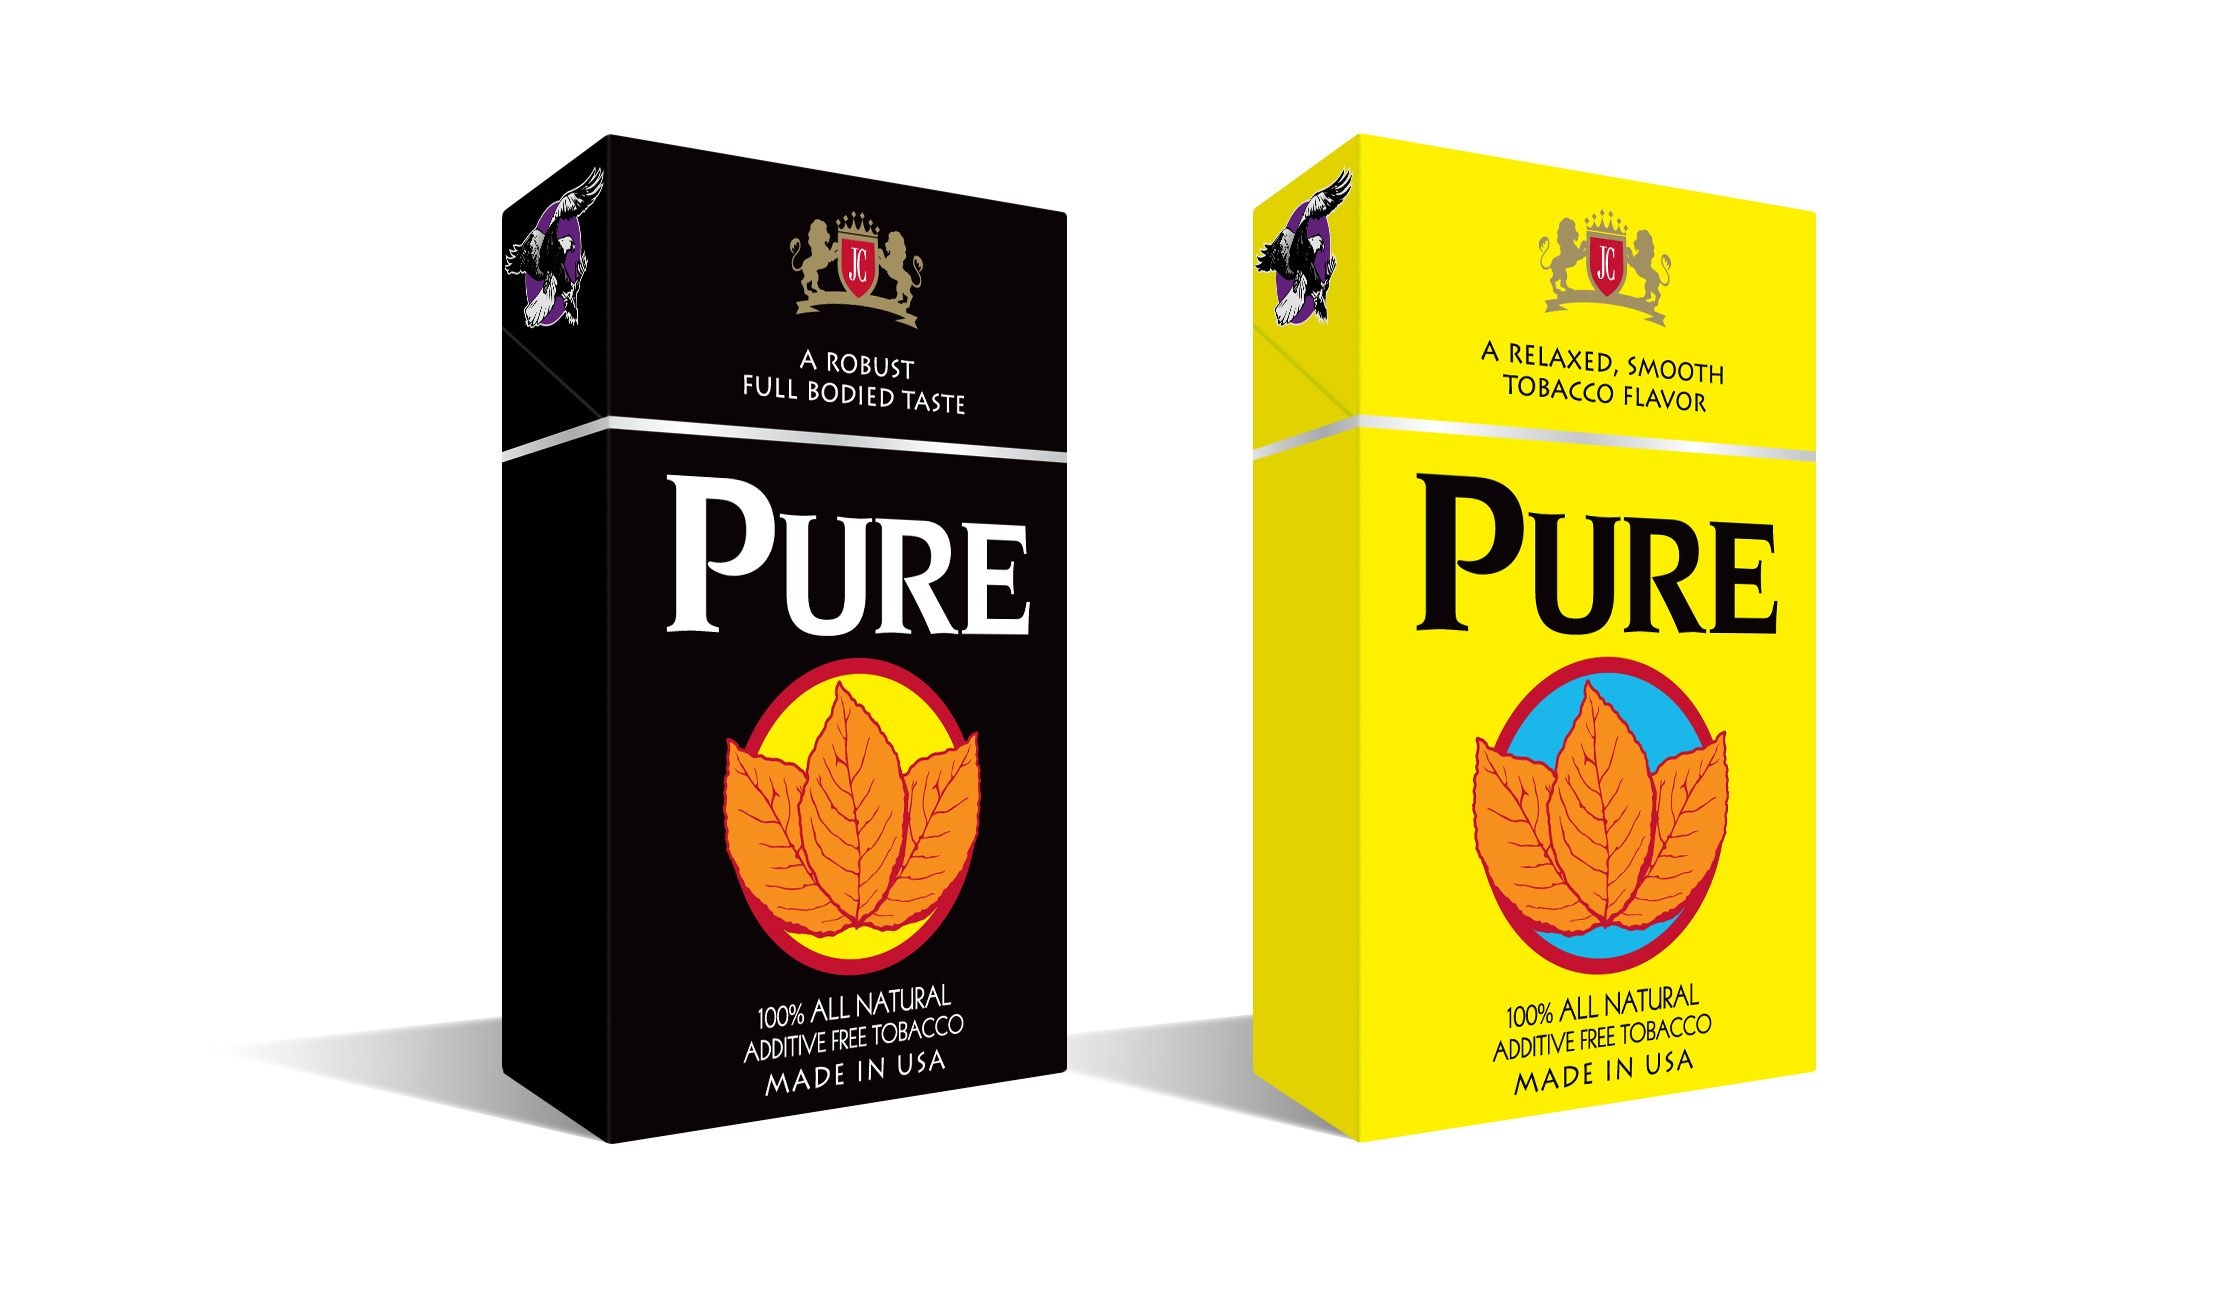 Crush-proof box package design we created for Pure cigarettes  www